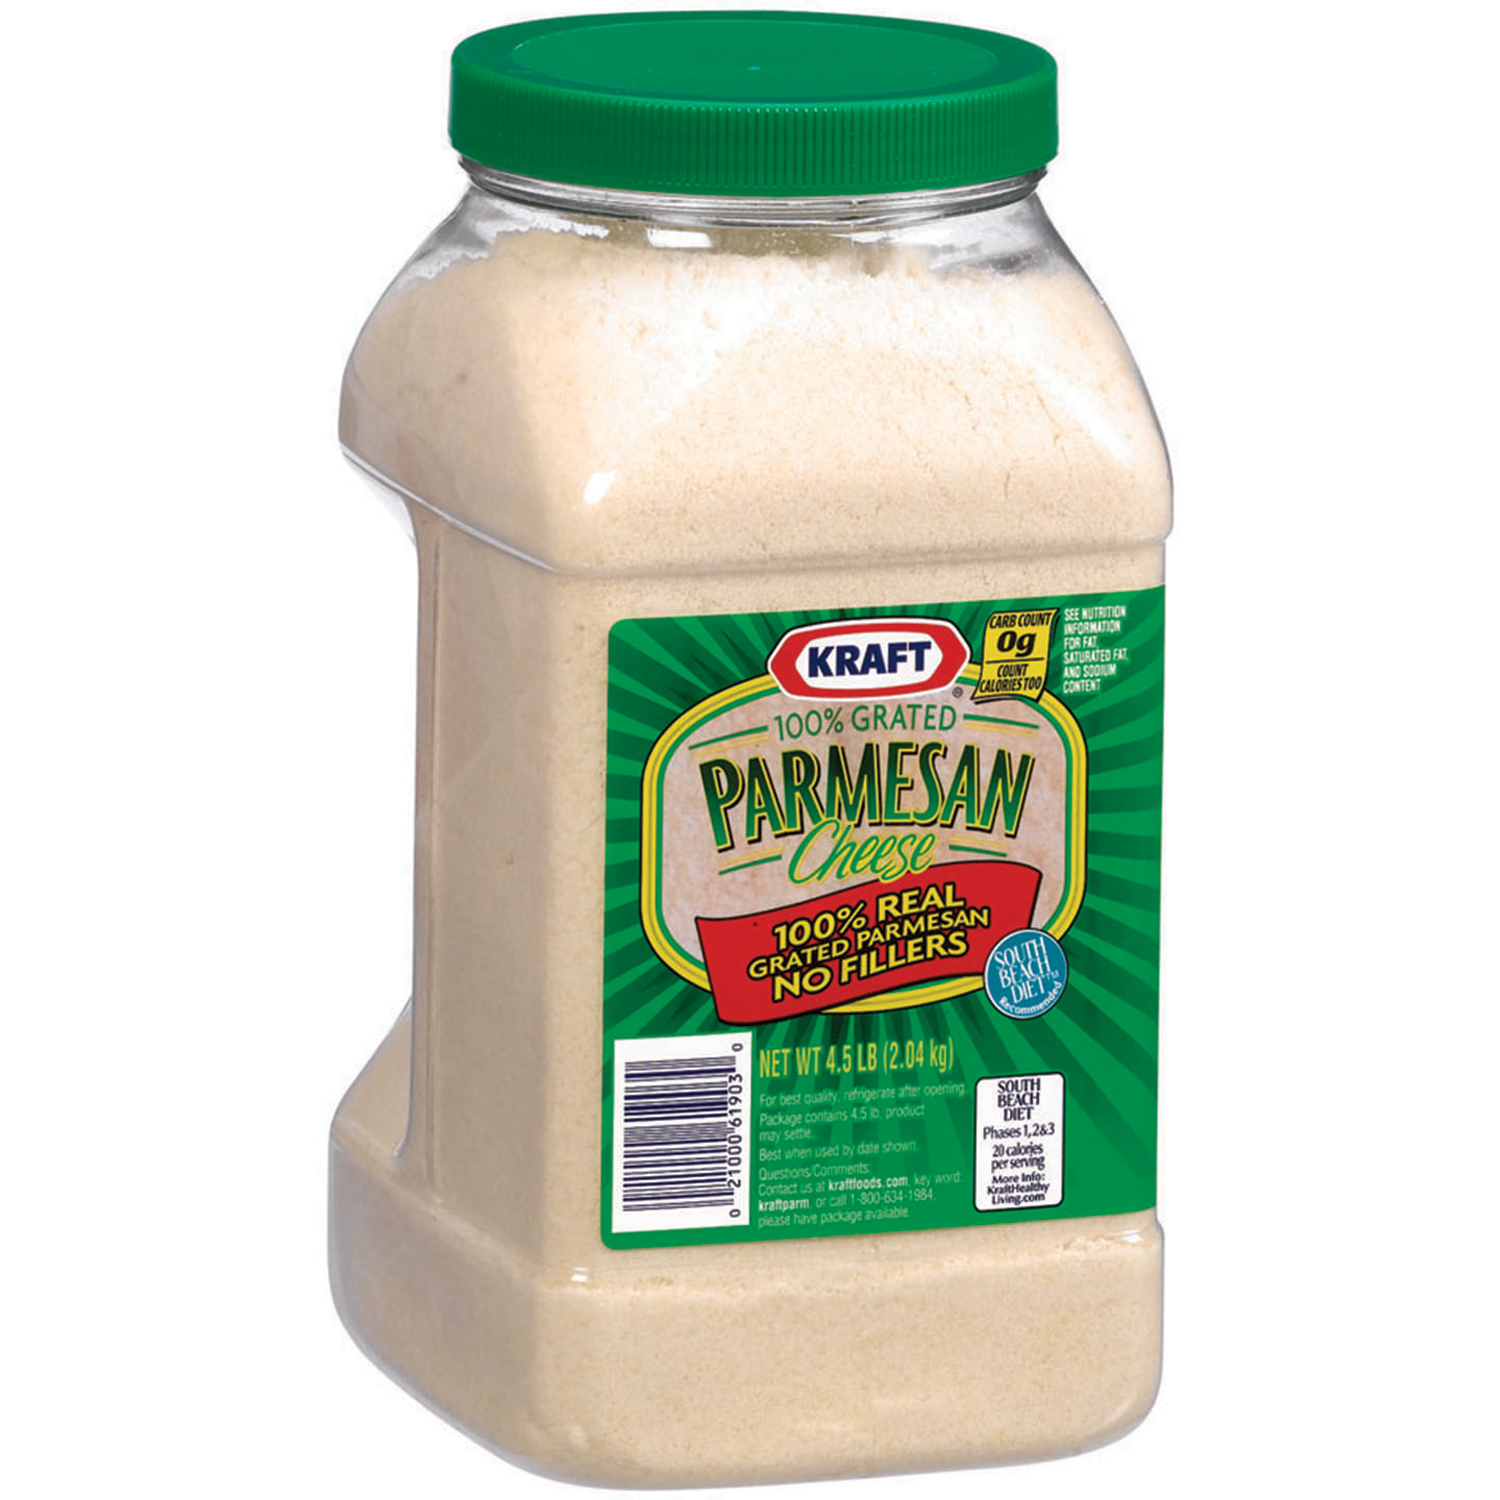 Kraft 100% Grated Parmesan Cheese 4.5 lb. Jar